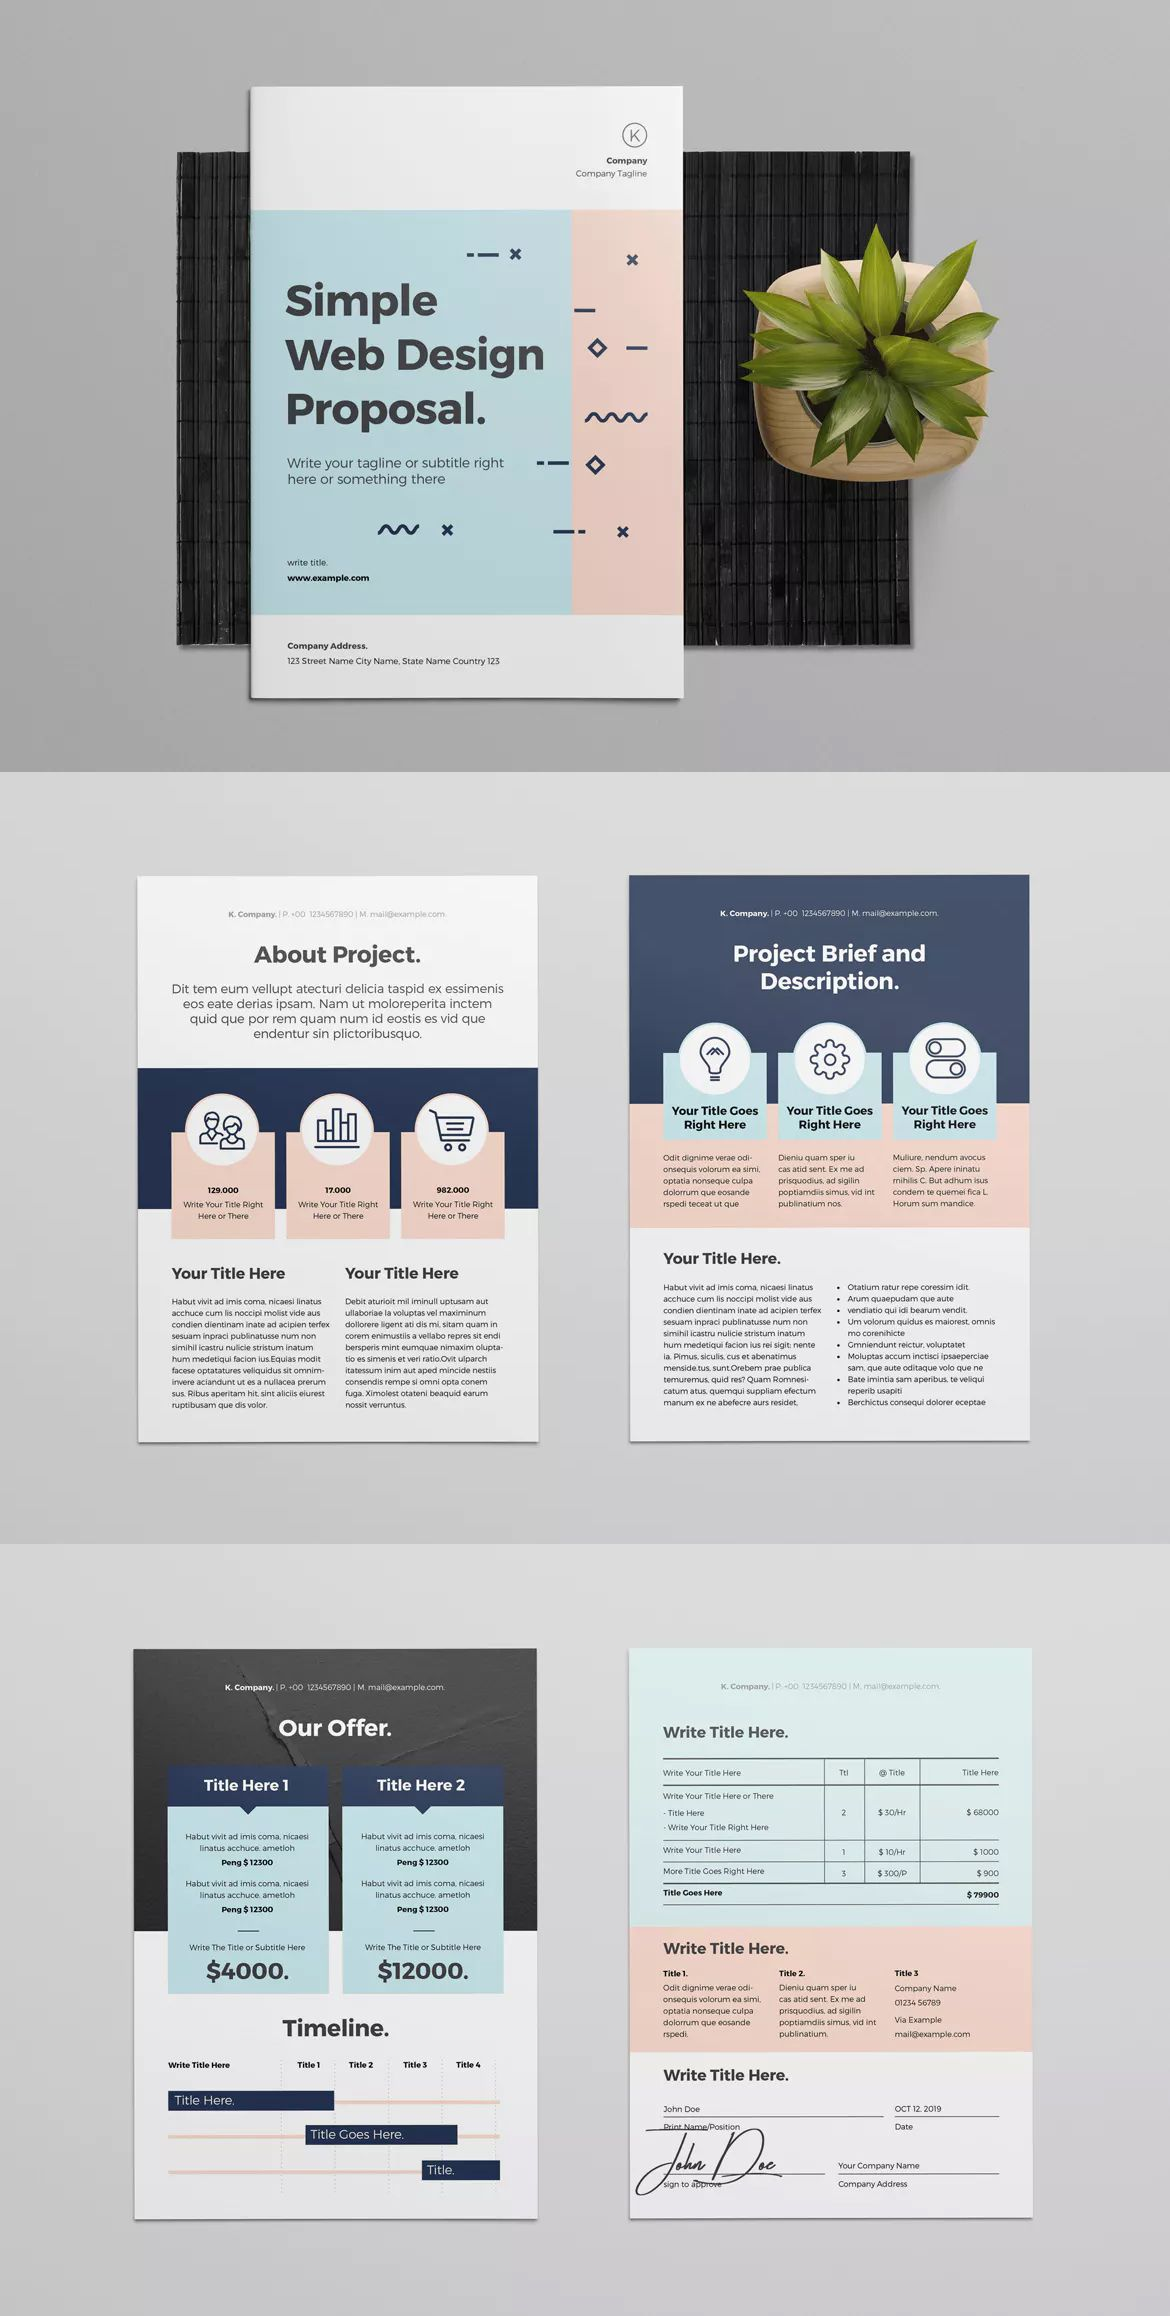 Web Design Proposal Template Indesign Indd Cmyk 300 Dpi Print